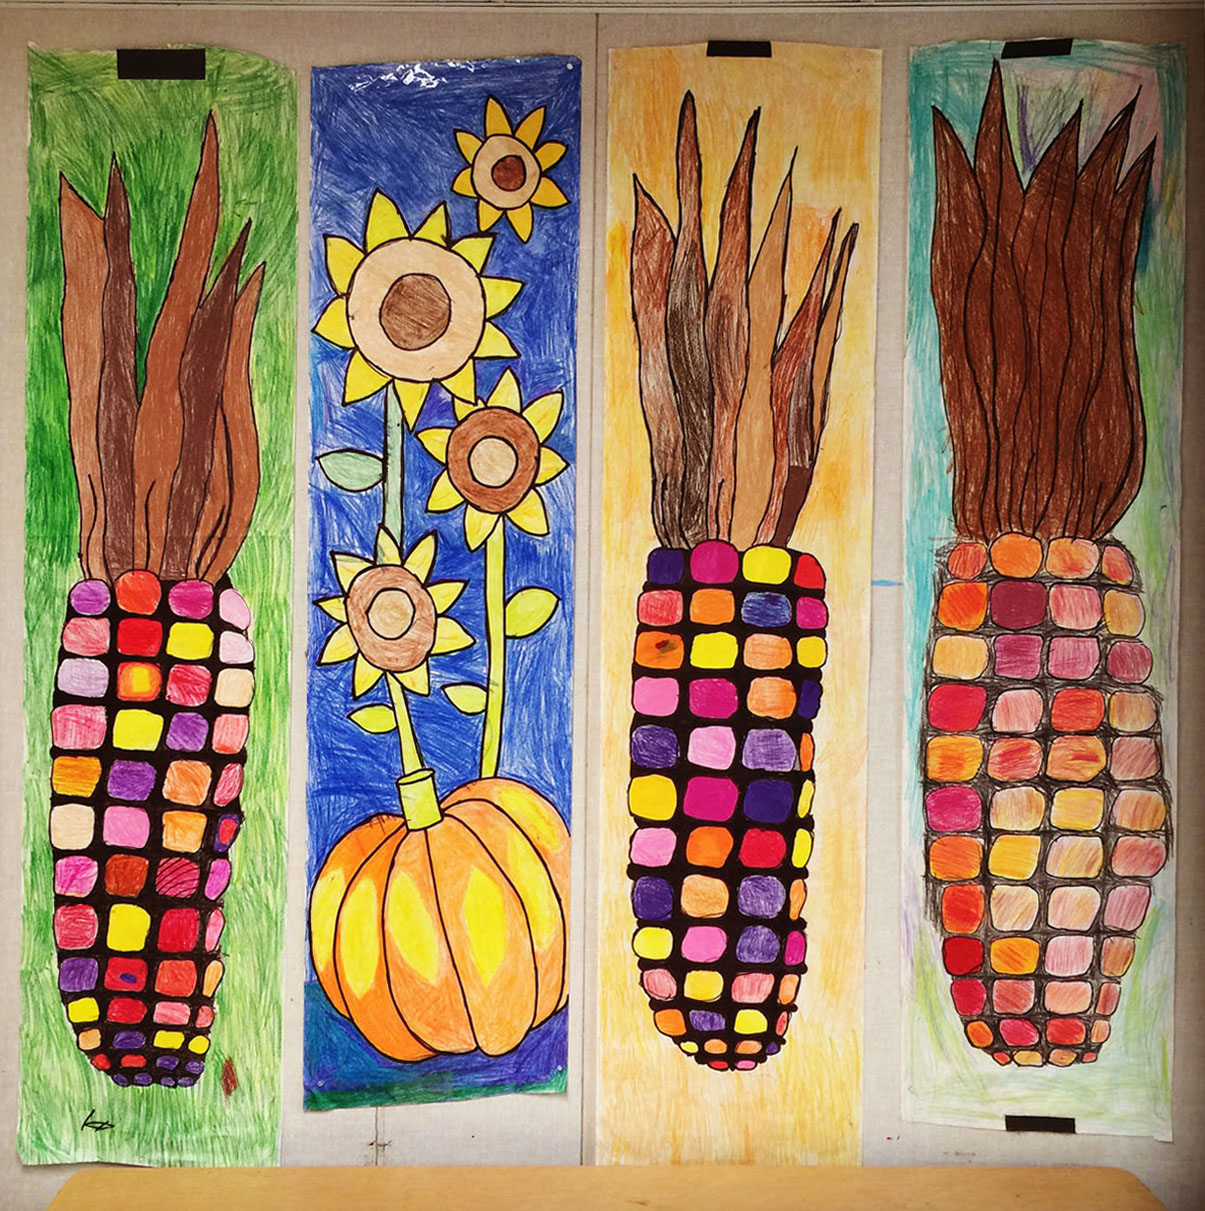 Fall Festival Banners  Art Projects For Kids. Cake Ideas With Yellow Cake Mix. Hairstyles And Colors For Fall 2016. Patio Ideas Pavers. Gender Reveal Party Ideas Besides Cake. Proposal Ideas Simple Romantic. Bathroom Ideas Shower And Bath. Outdoor Gate Ideas. Valentine Quick Ideas